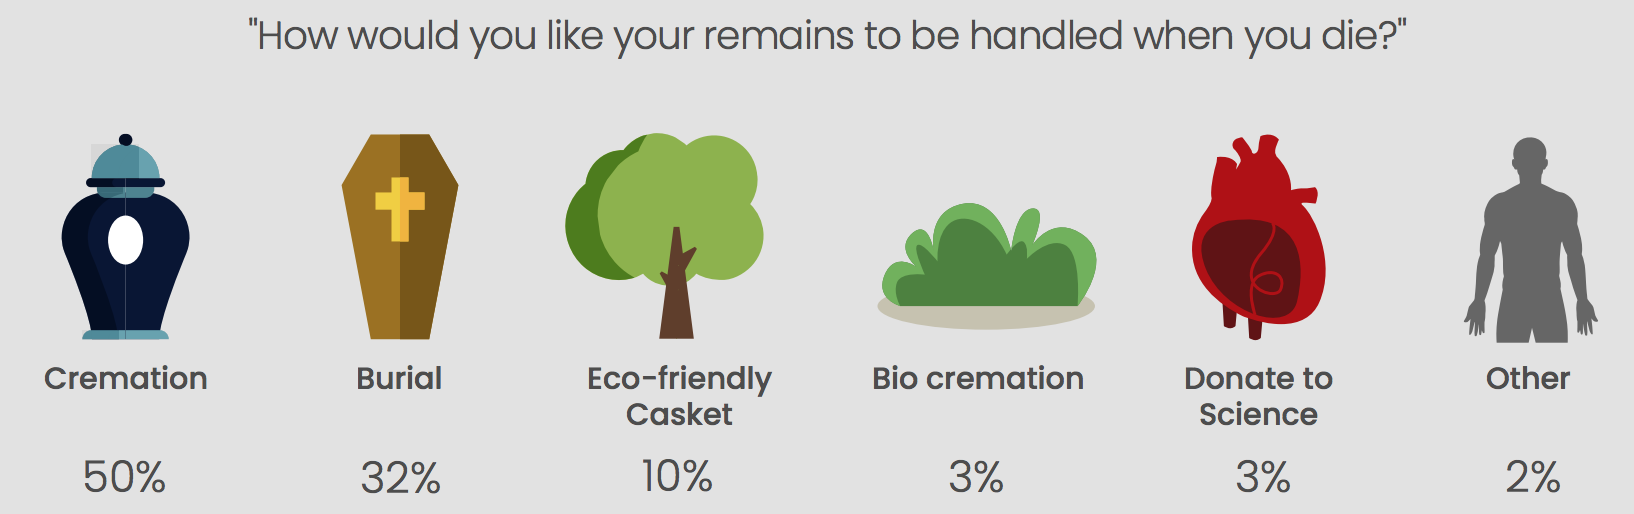 Respondents strongly preferred cremations over other forms of remains handling, with 50% opting for this method.